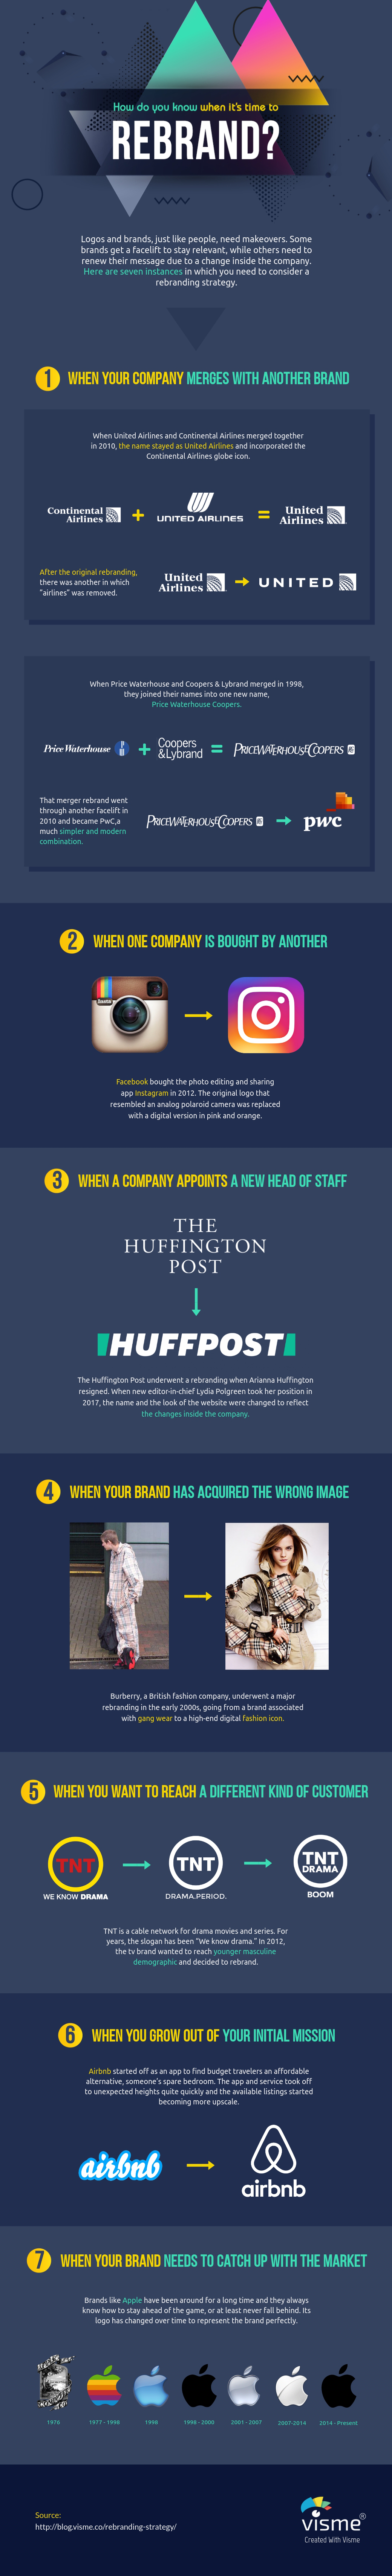 12-Steps-to-a-Successful-Rebrand-rebranding strategy